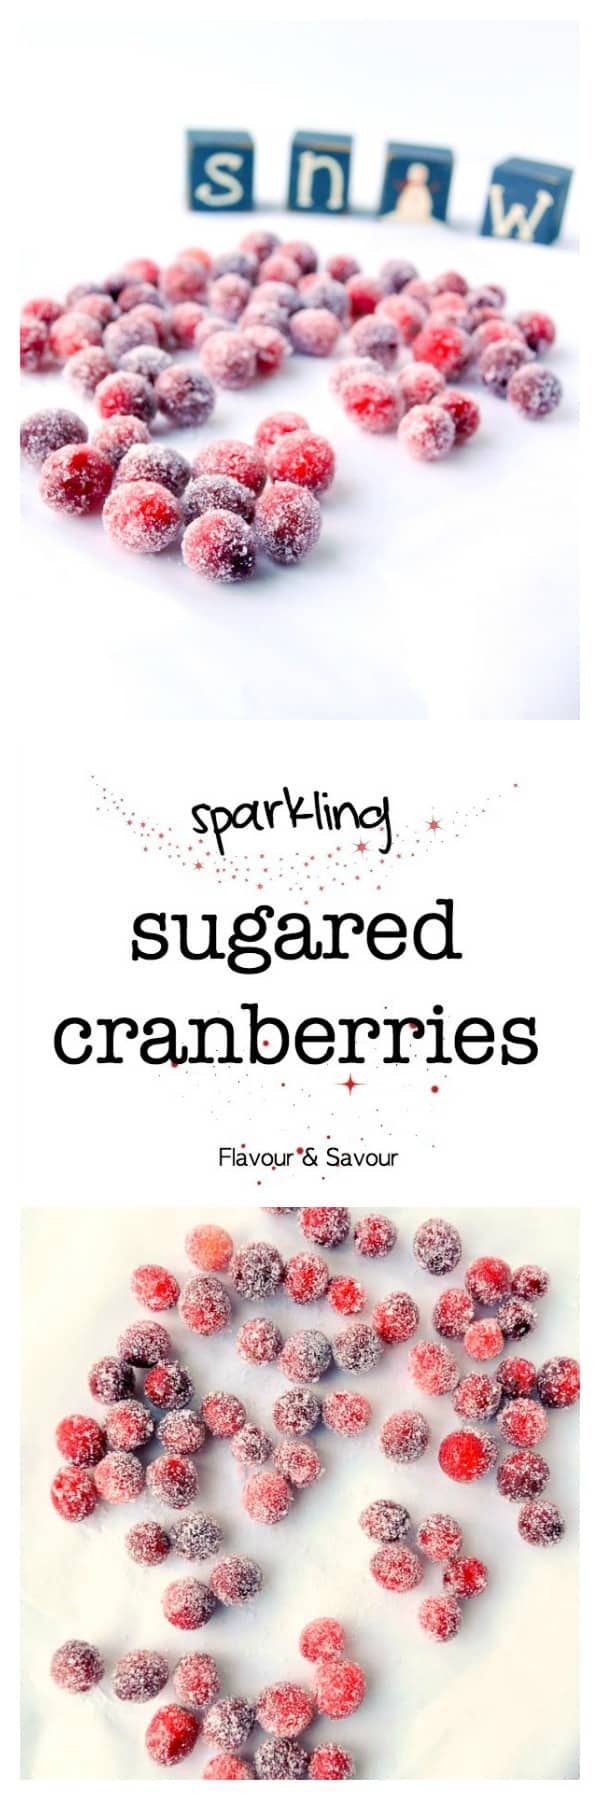 Sparkling Sugared Cranberries. Soaked in maple syrup, these showstopper cranberries are great to decorate a cheesecake, top an appy, or add to a cocktail. Easy!